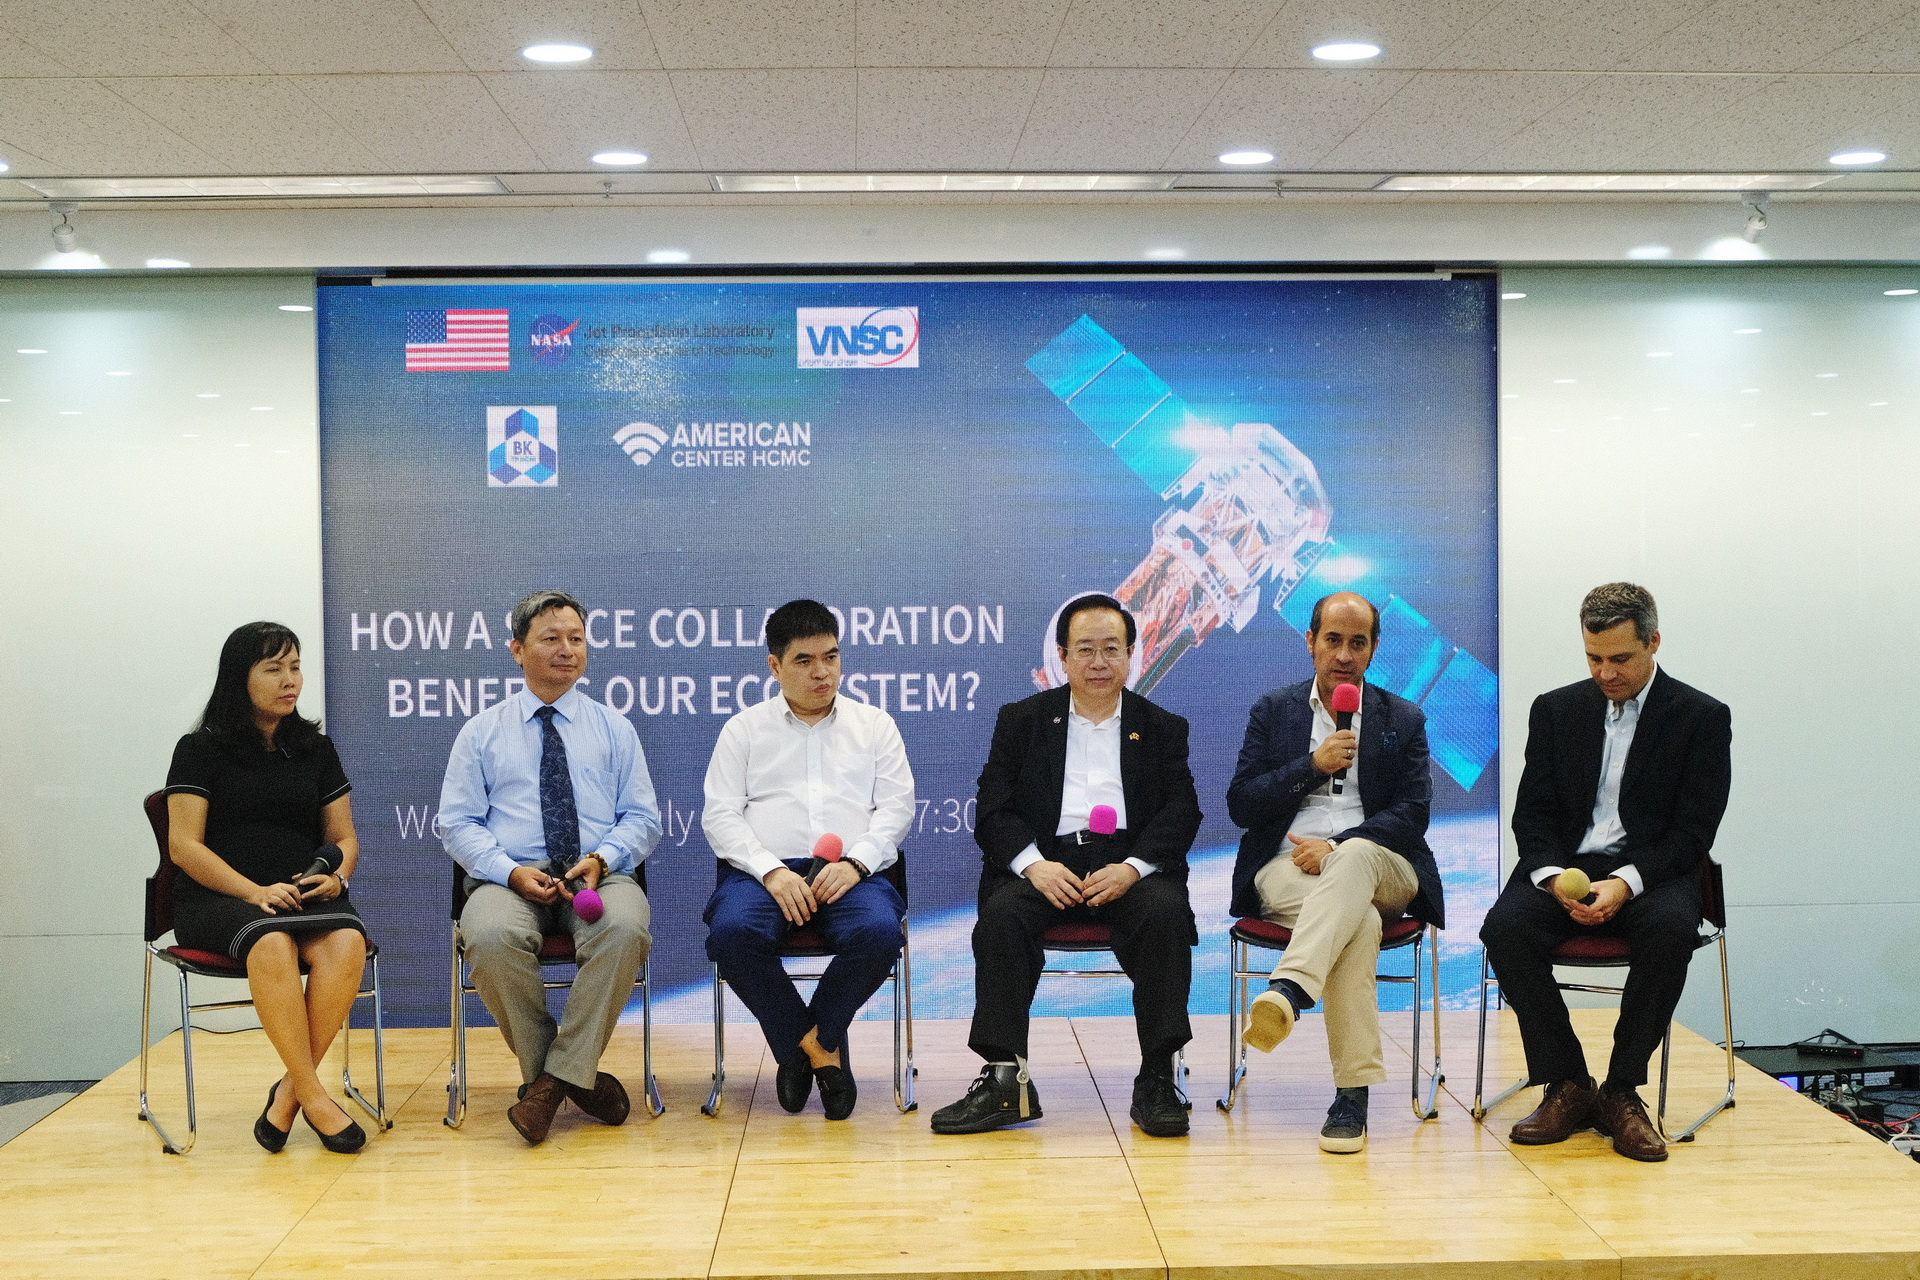 Space scientists and experts join a panel discussion at a NASA-supported space collaboration event in Ho Chi Minh City on July 17, 2019. Photo: Tuan Son / Tuoi Tre News